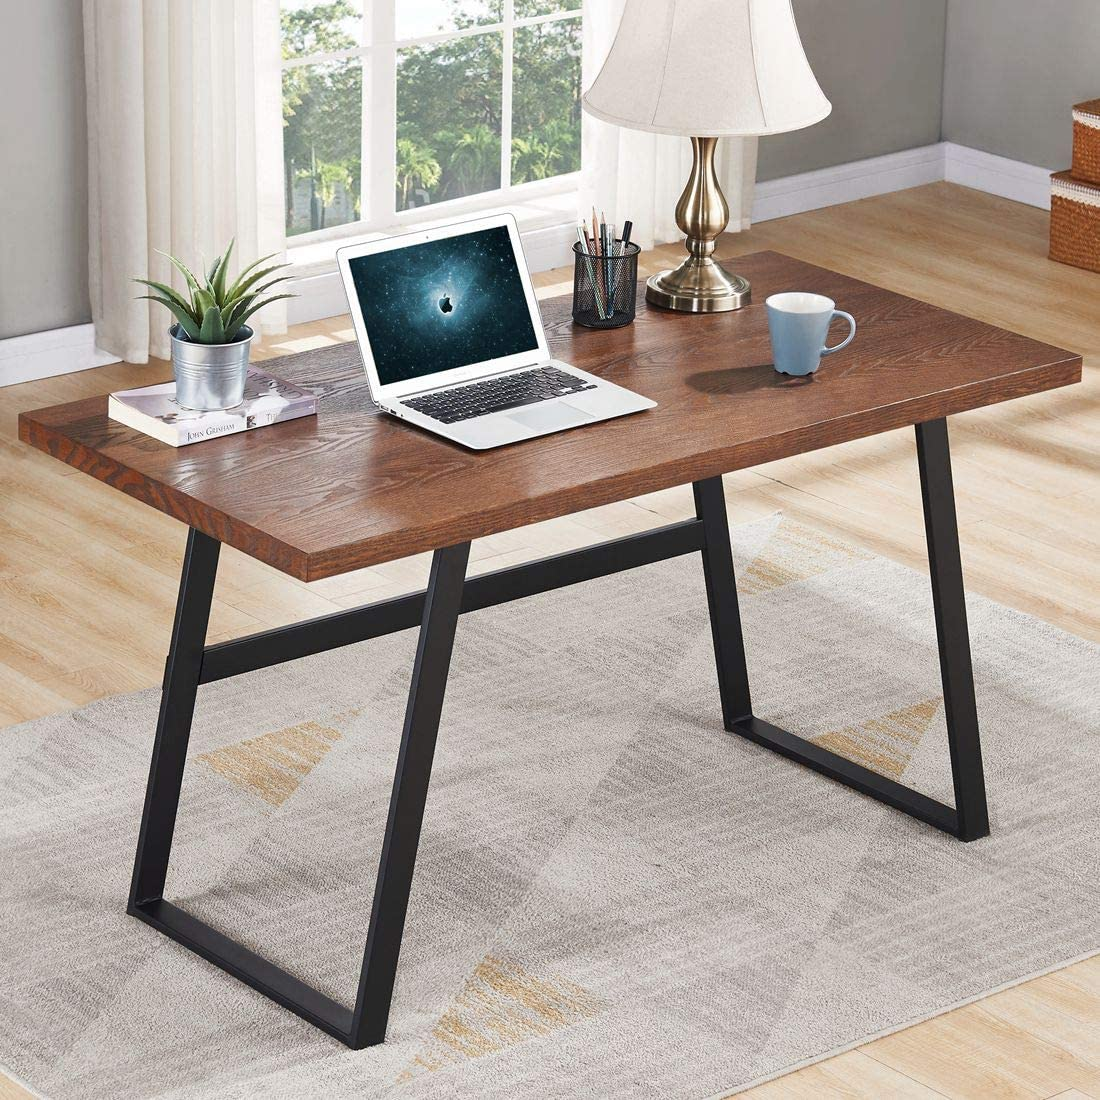 BON AUGURE Rustic Wood Computer Desk, Industrial PC Writing Desk, Vintage Study Table for Home Office Workstation (55 inch, Espresso)